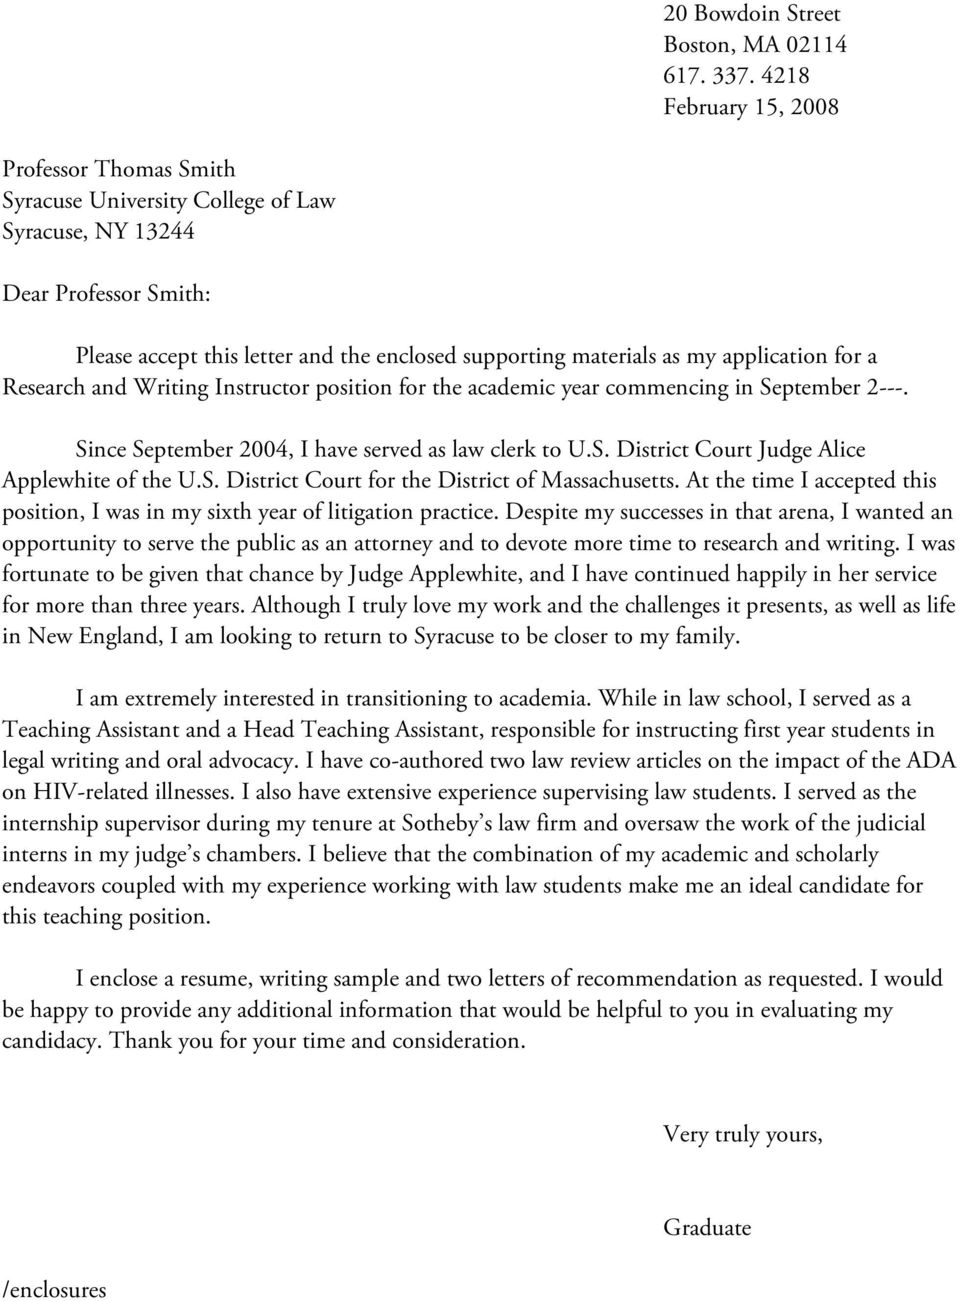 application for a Research and Writing Instructor position for the academic year commencing in September 2---. Since September 2004, I have served as law clerk to U.S. District Court Judge Alice Applewhite of the U.